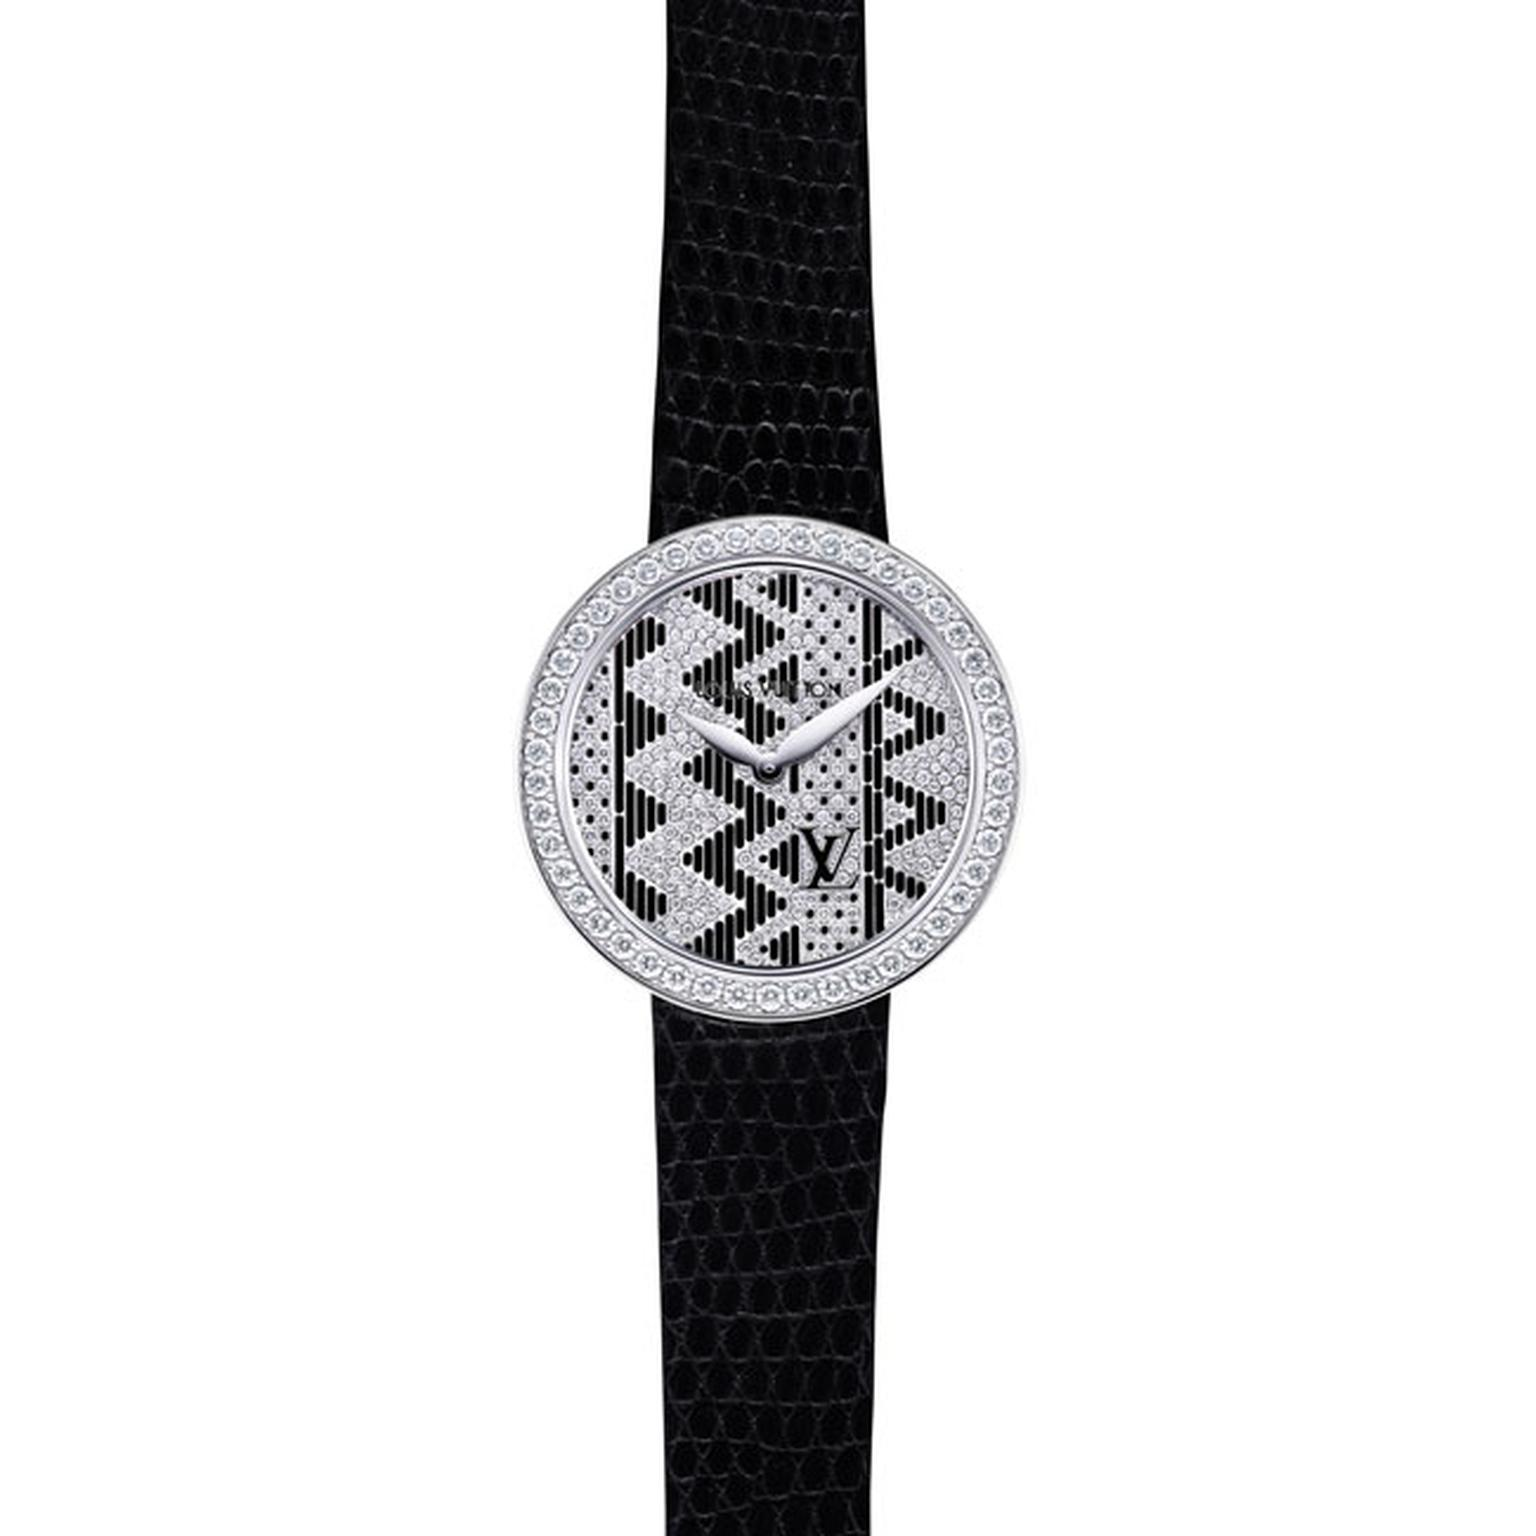 Louis Vuitton Joaillerie Chevron ladies watch in black_main